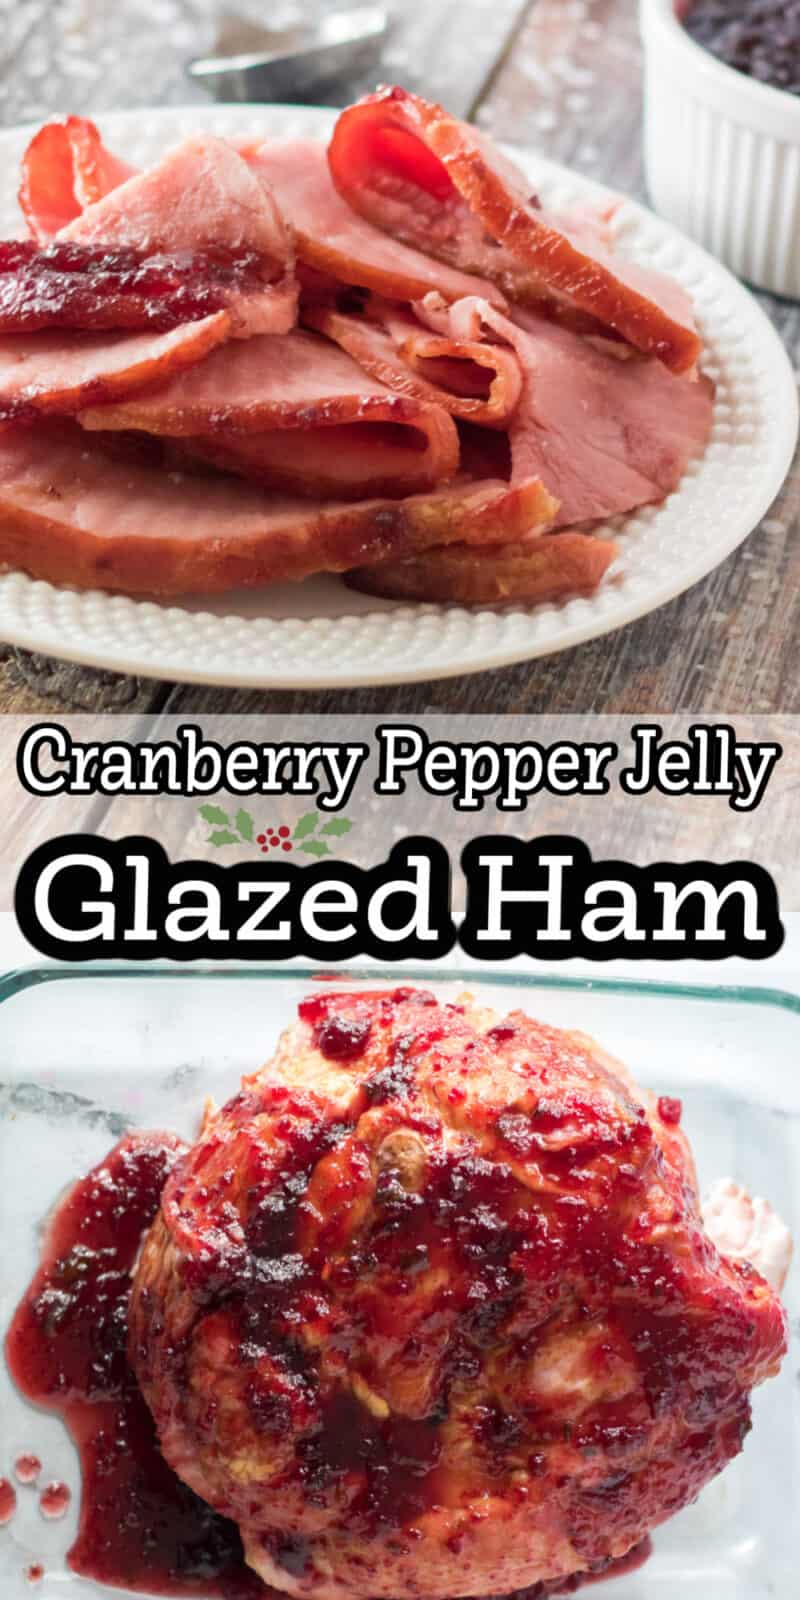 ham and slices of ham on plates with text